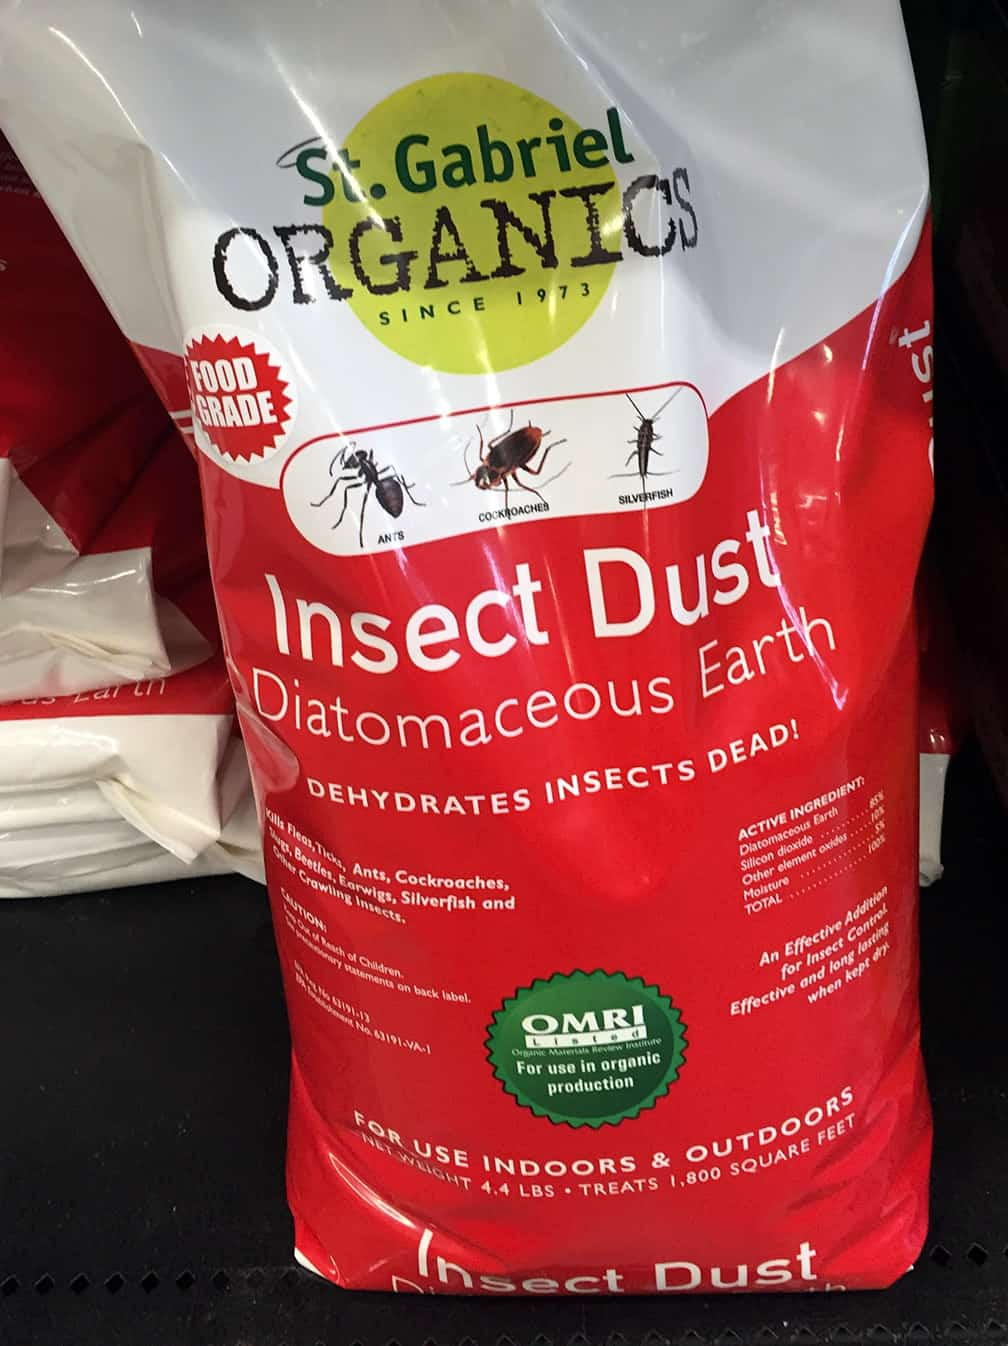 I sprinkle diatomaceous earth on all my newly planted veggies and emerging seedlings. It kills earwigs, flea beetles and slugs, the three most common pests on new veggie plants. Sprinkle a fine layer over the foliage and the soil around it. Note: do not dust when the plant is wet and don't water afterwards because this makes DE less effective. Also, don't scatter on a windy day unless you're wearing a mask so you don't breathe the dust. Even organic treatments aren't good if you take them into your lungs!